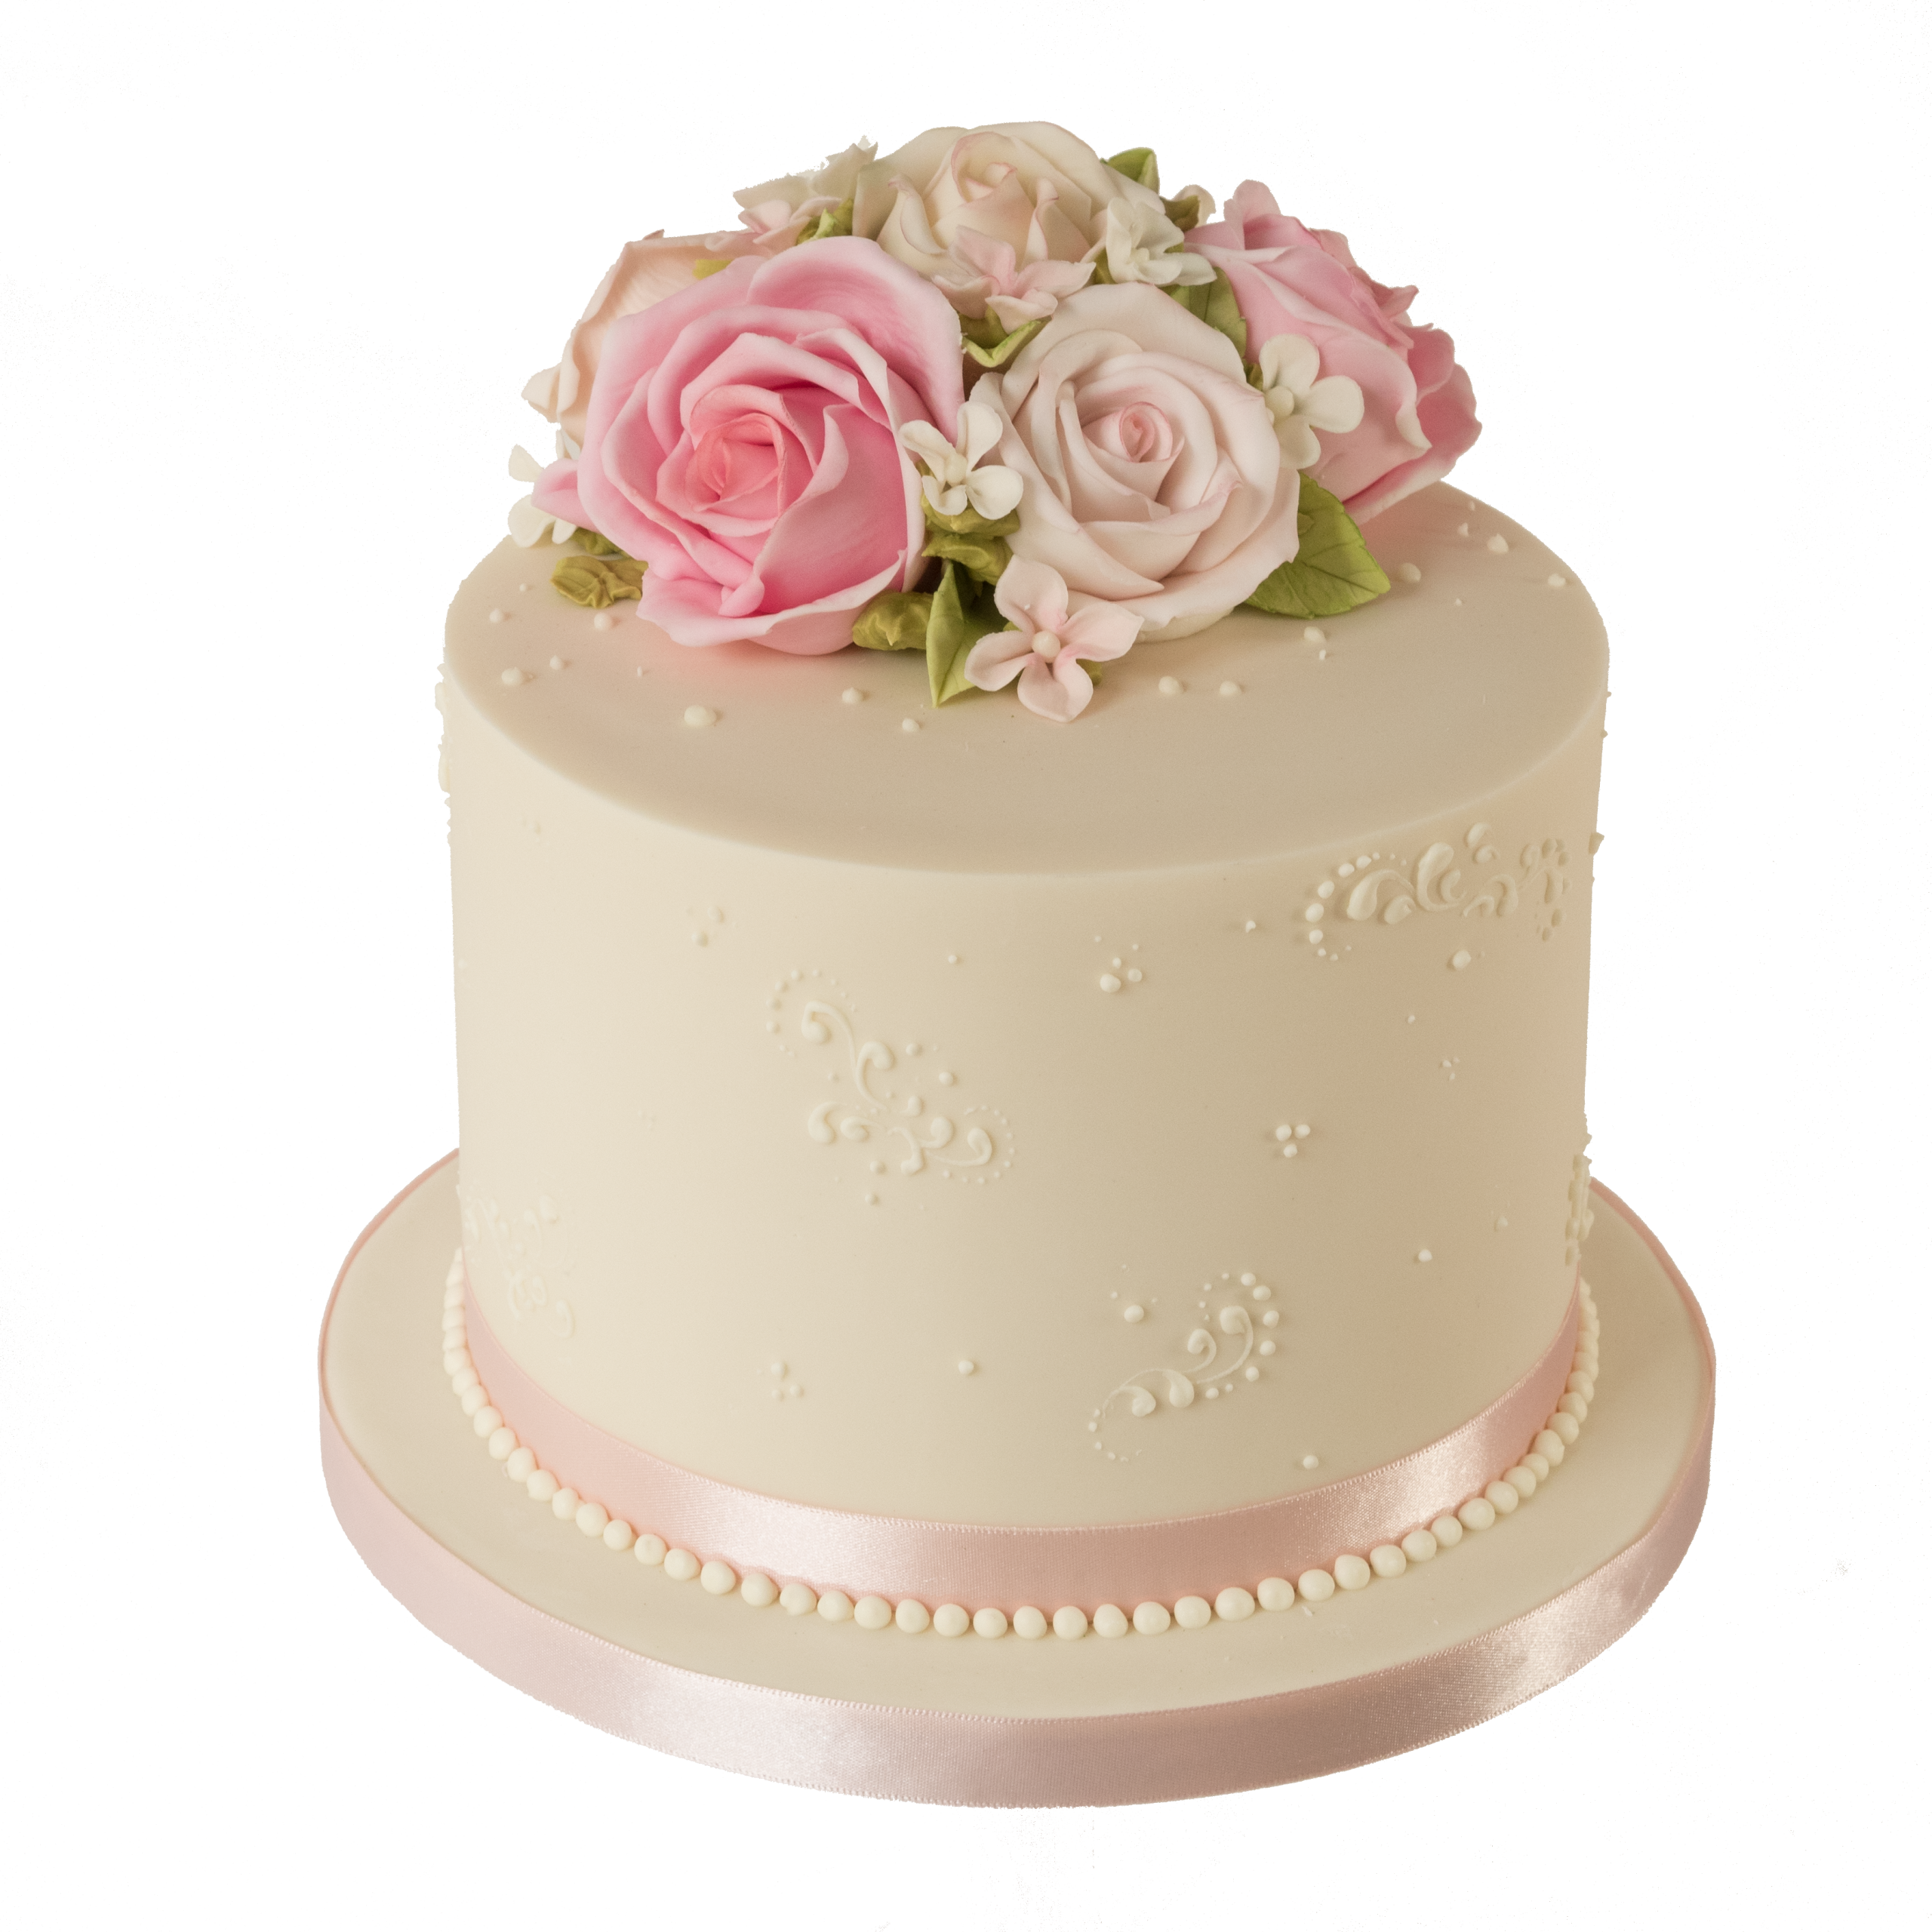 Phenomenal Download Birthday Cake With Roses Png Image With No Background Birthday Cards Printable Trancafe Filternl